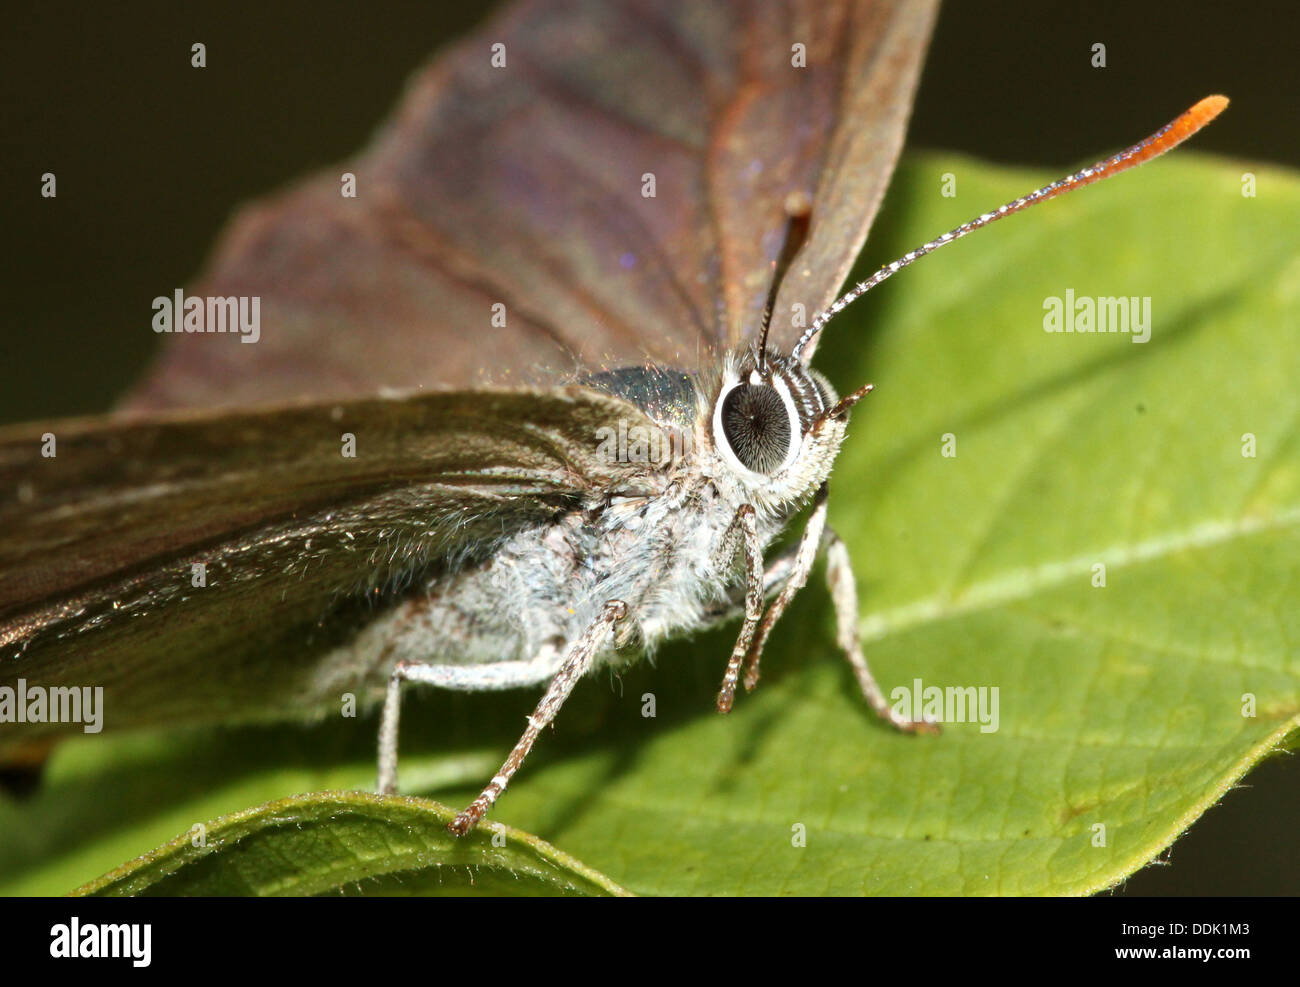 Purple Hairstreak Butterfly (Favonius quercus) foraging and posing on a leaf - Stock Image